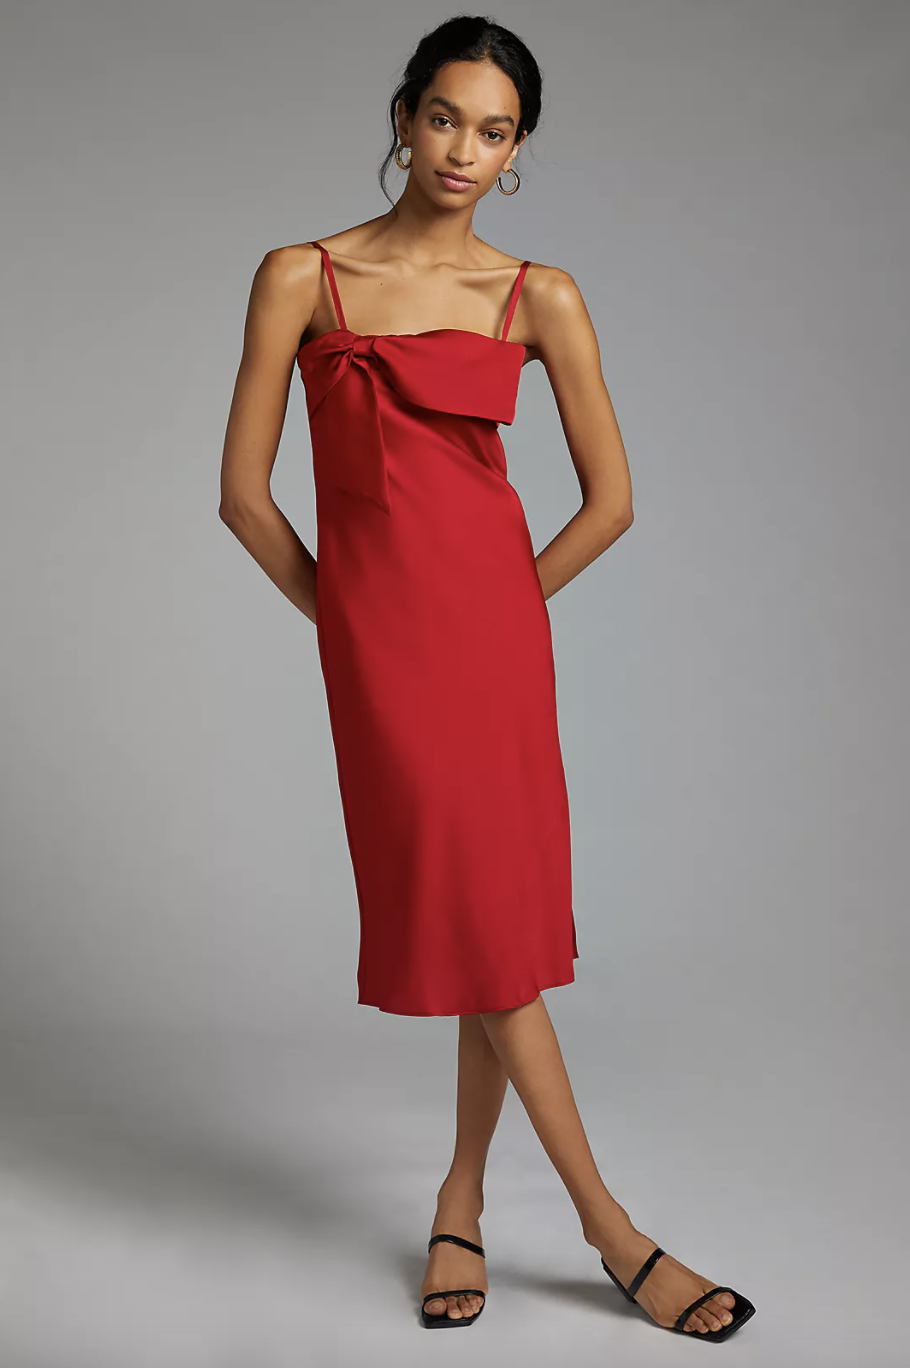 model with black hair wearing red Bow-Front Slip Midi Dress